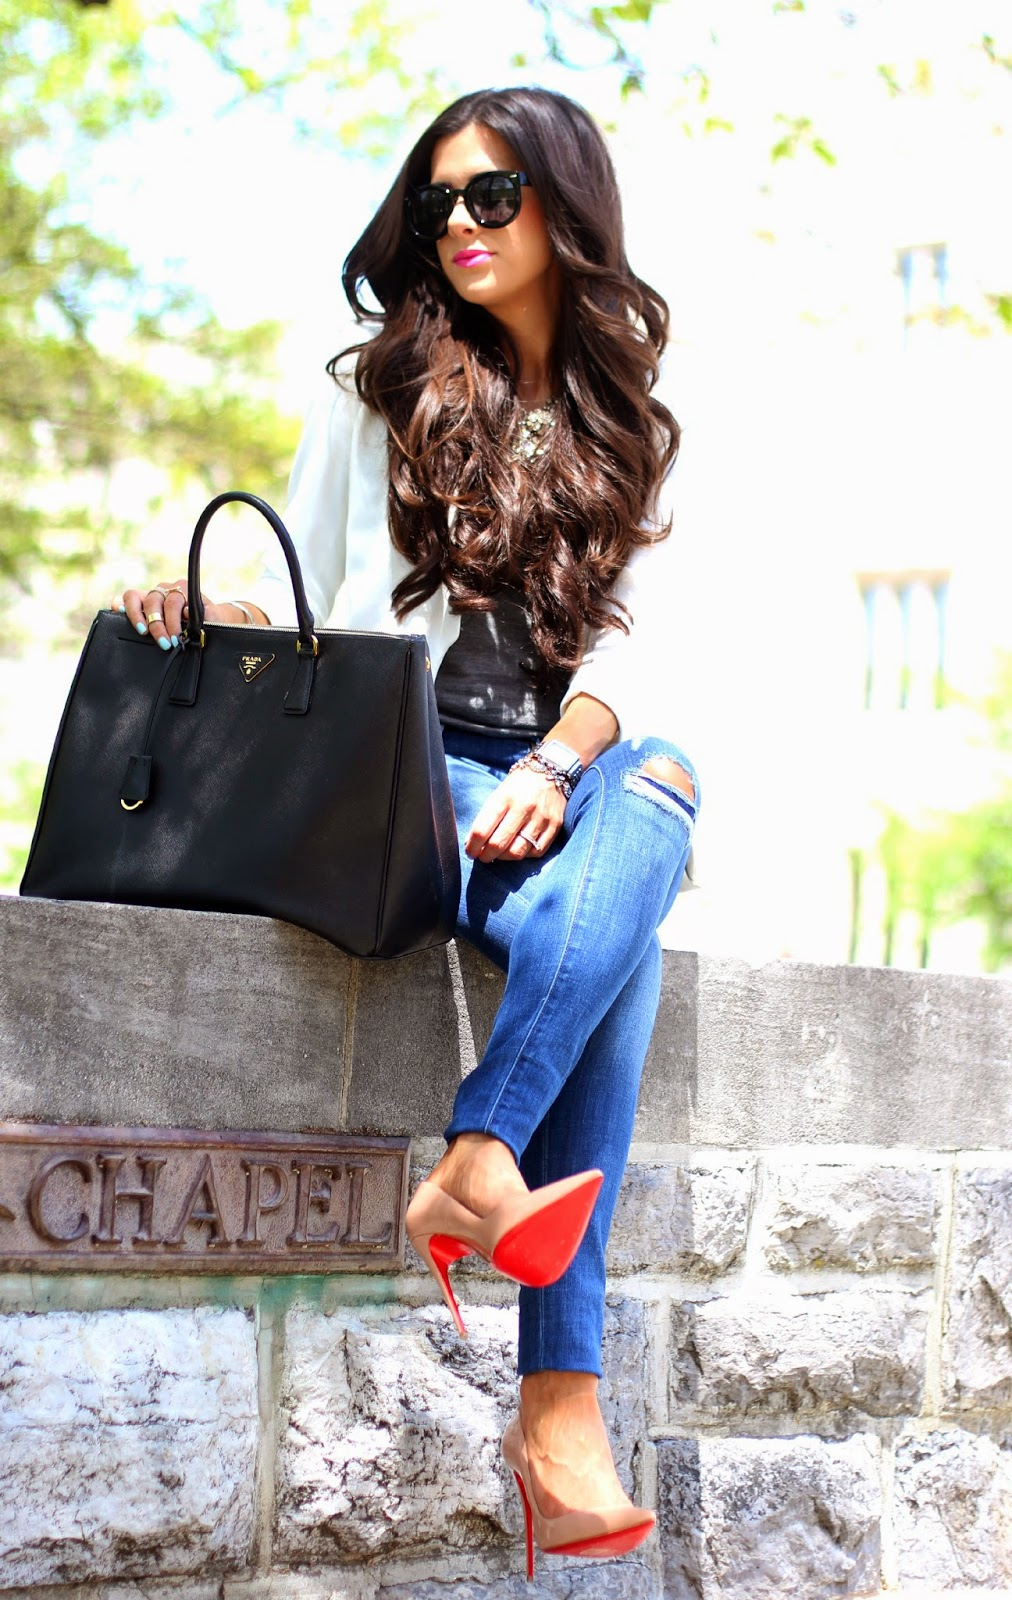 www.TheSweetestThingBlog.com, The Sweetest Thing, Emily Gemma, Emily Ann Gemma on Instagram, Emily Ann Gemma Pinterest, Wifey Tee Shirt, ILY couture Wifey Tee Shirt, How to style a gray tee, dittos skinny jeans, skinny jeans at nordstrom, christian louboutin heels, christian louboutin so kate 120mm, prada executive tote, prada bag in black large double zip, crystal flower necklace jcrew, white blazer, white blazer from nordstrom, white blazer from h&m, white boyfriend blazer, women's long white blazer, how to style a white blazer, how to wear nude pumps with jeans, nude pumps, pinterest summer fashion 2014, pinterest outfits for summer 2014, spring fashion 2014, style blogger, fashion blog with wifey tee, karen walker sunglasses, bellami hair extensions, mocha chino bellami hair extensions